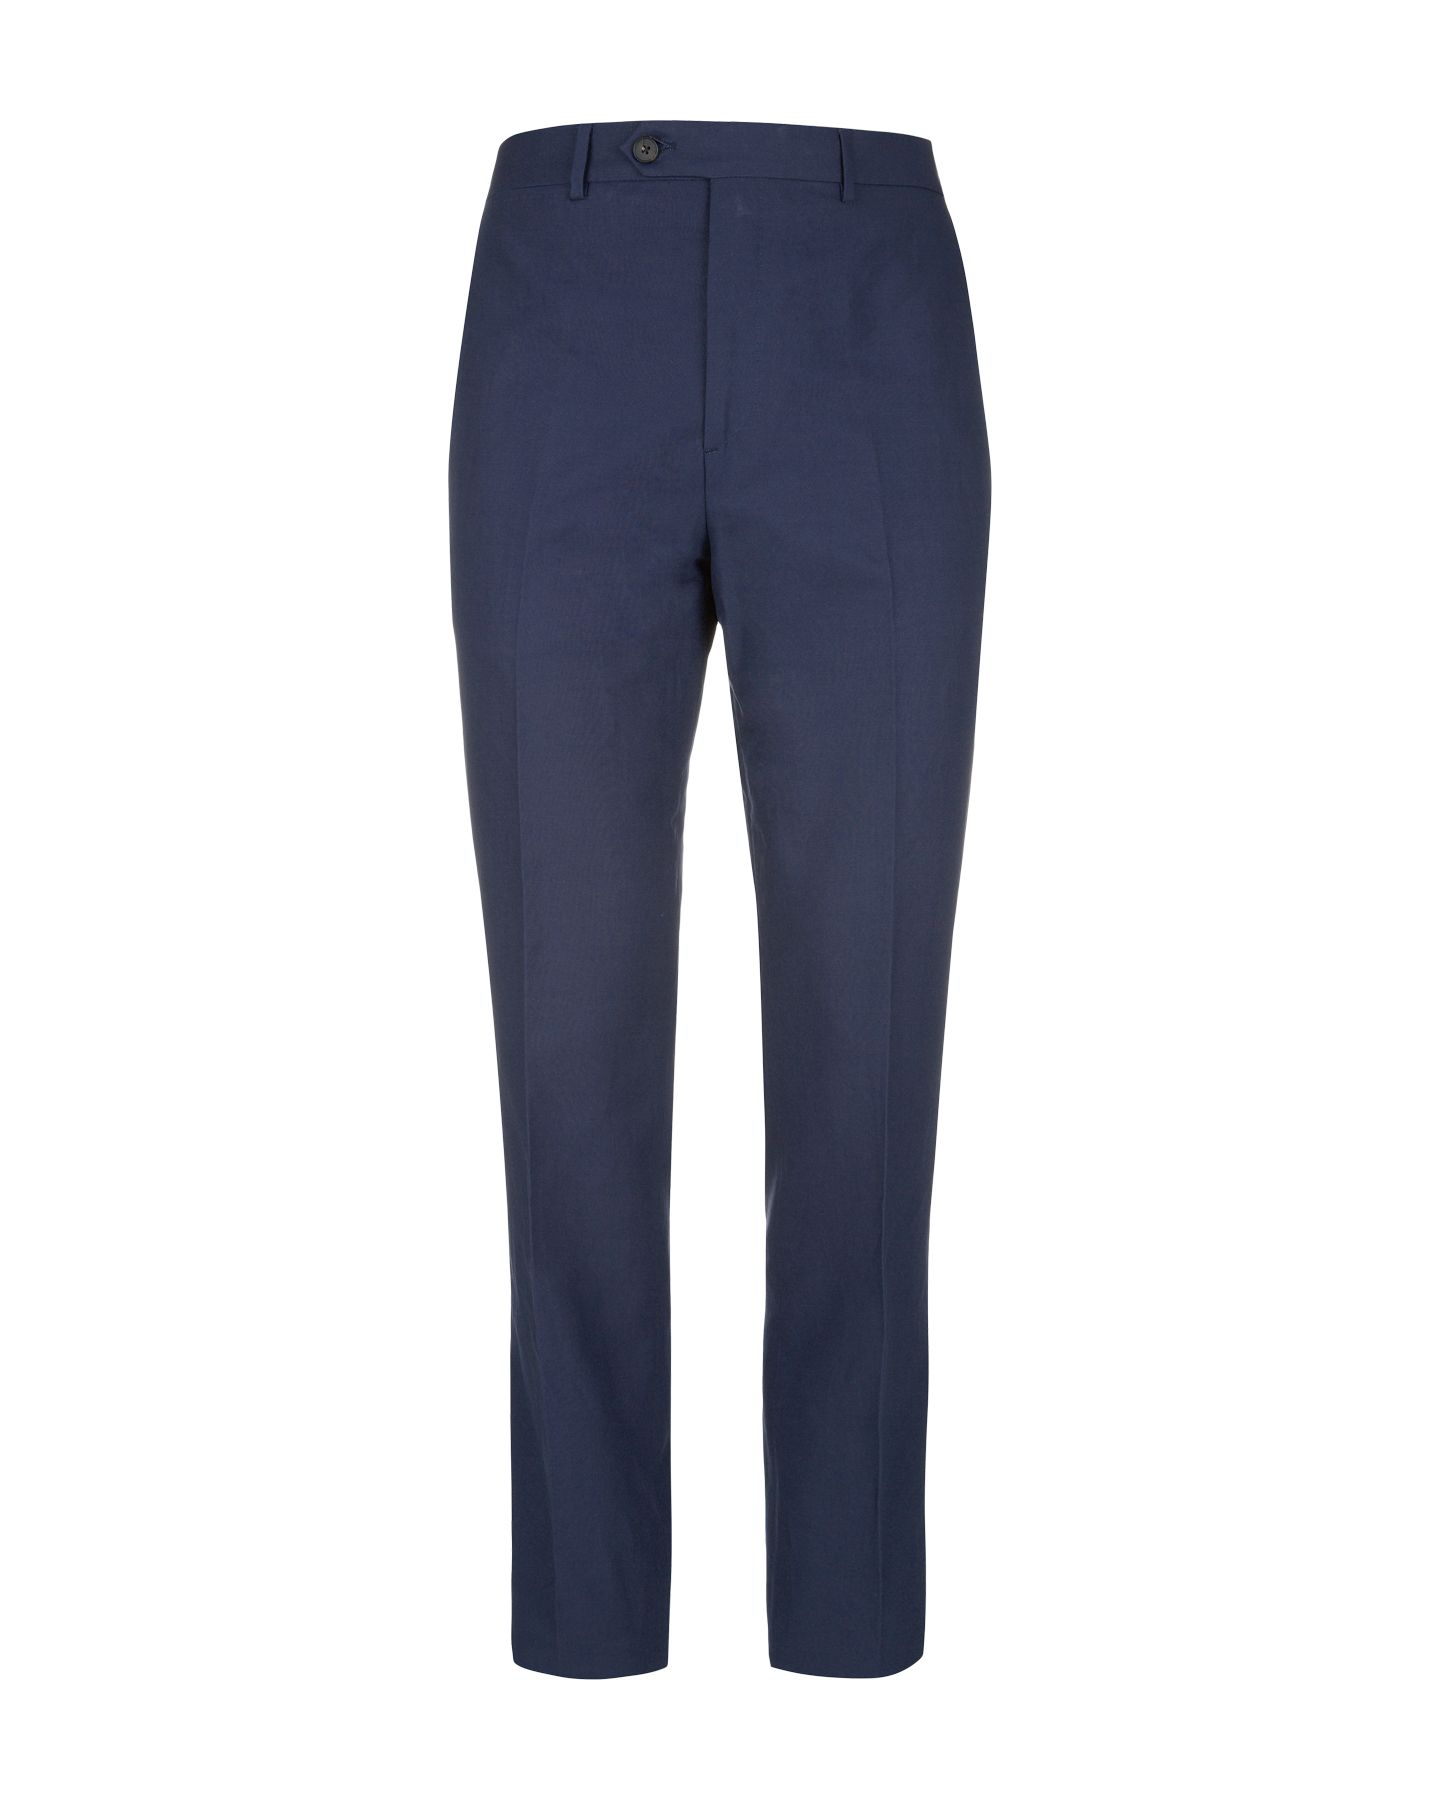 Eldor formal tailored trousers